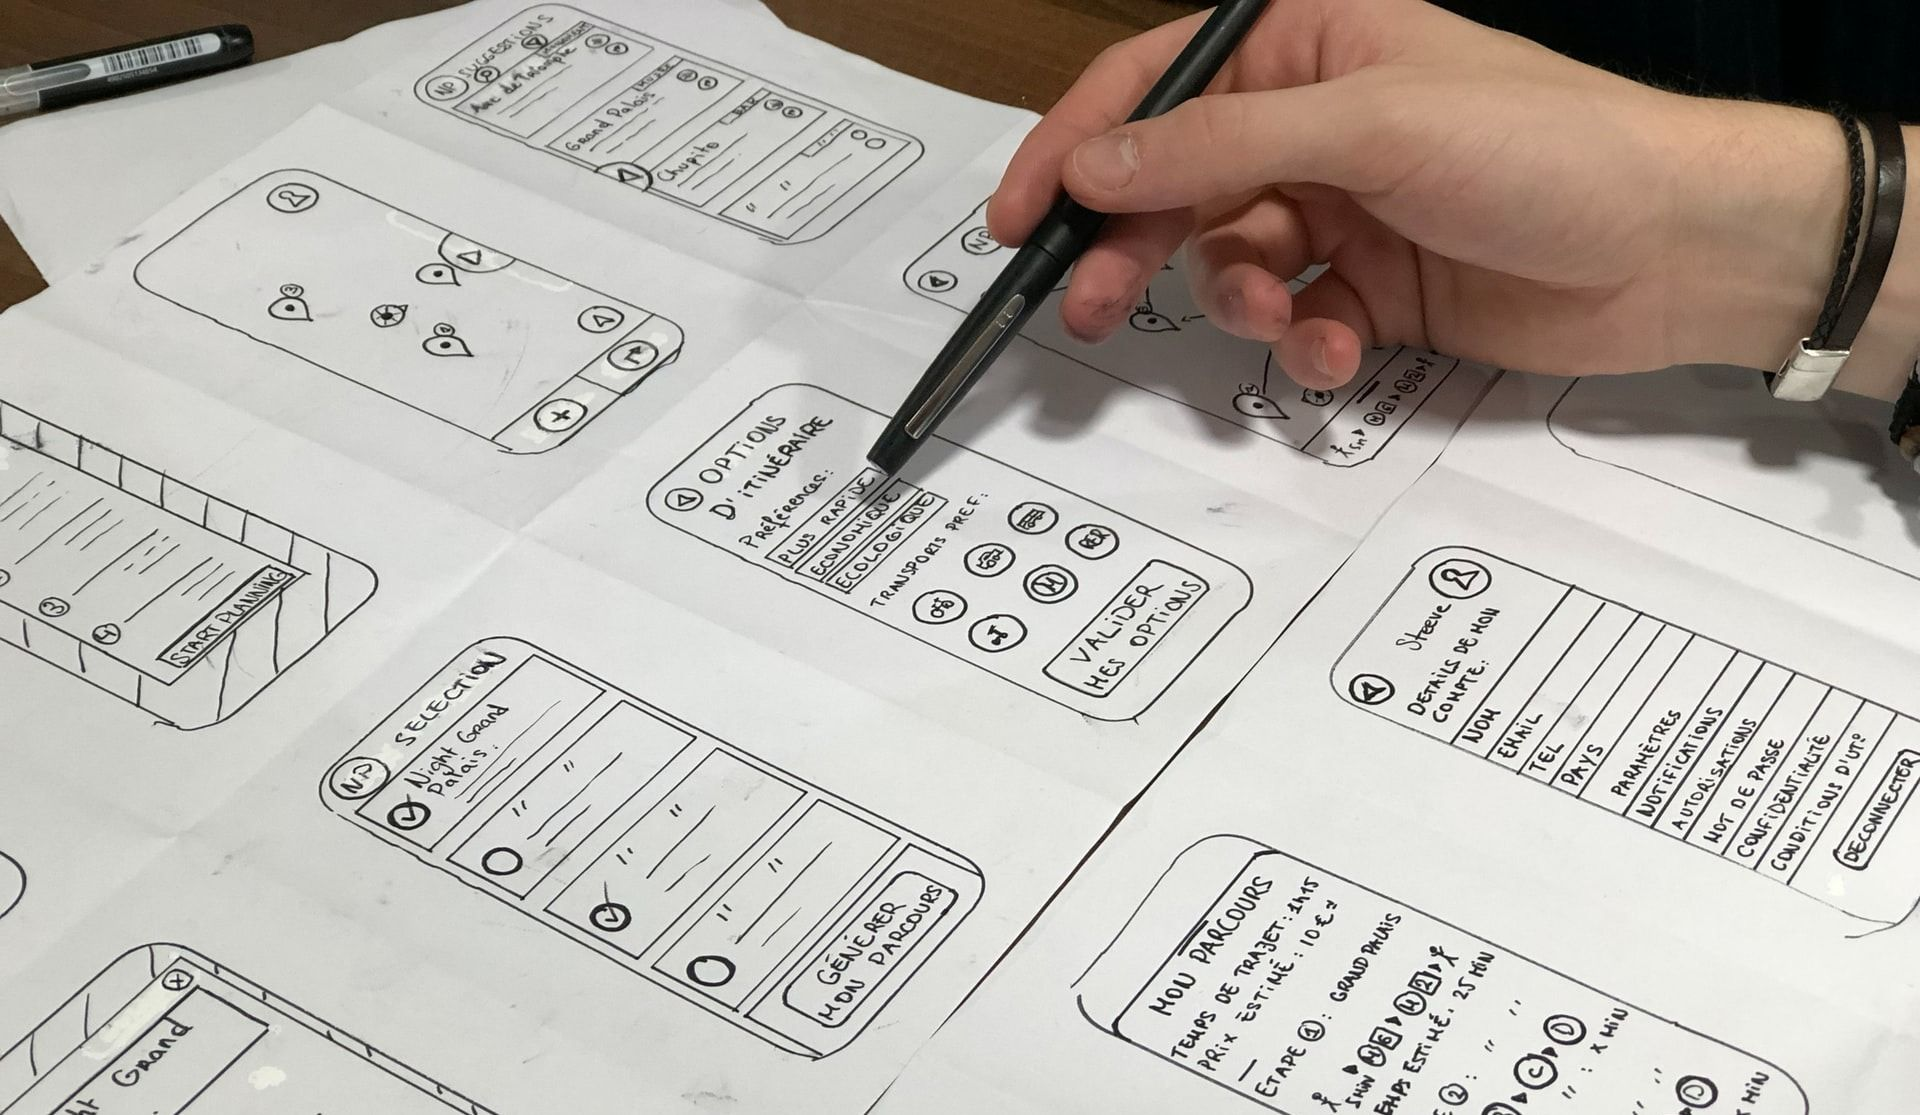 /8-ux-writing-resources-to-get-you-creating-magical-microcopy-ja223398 feature image